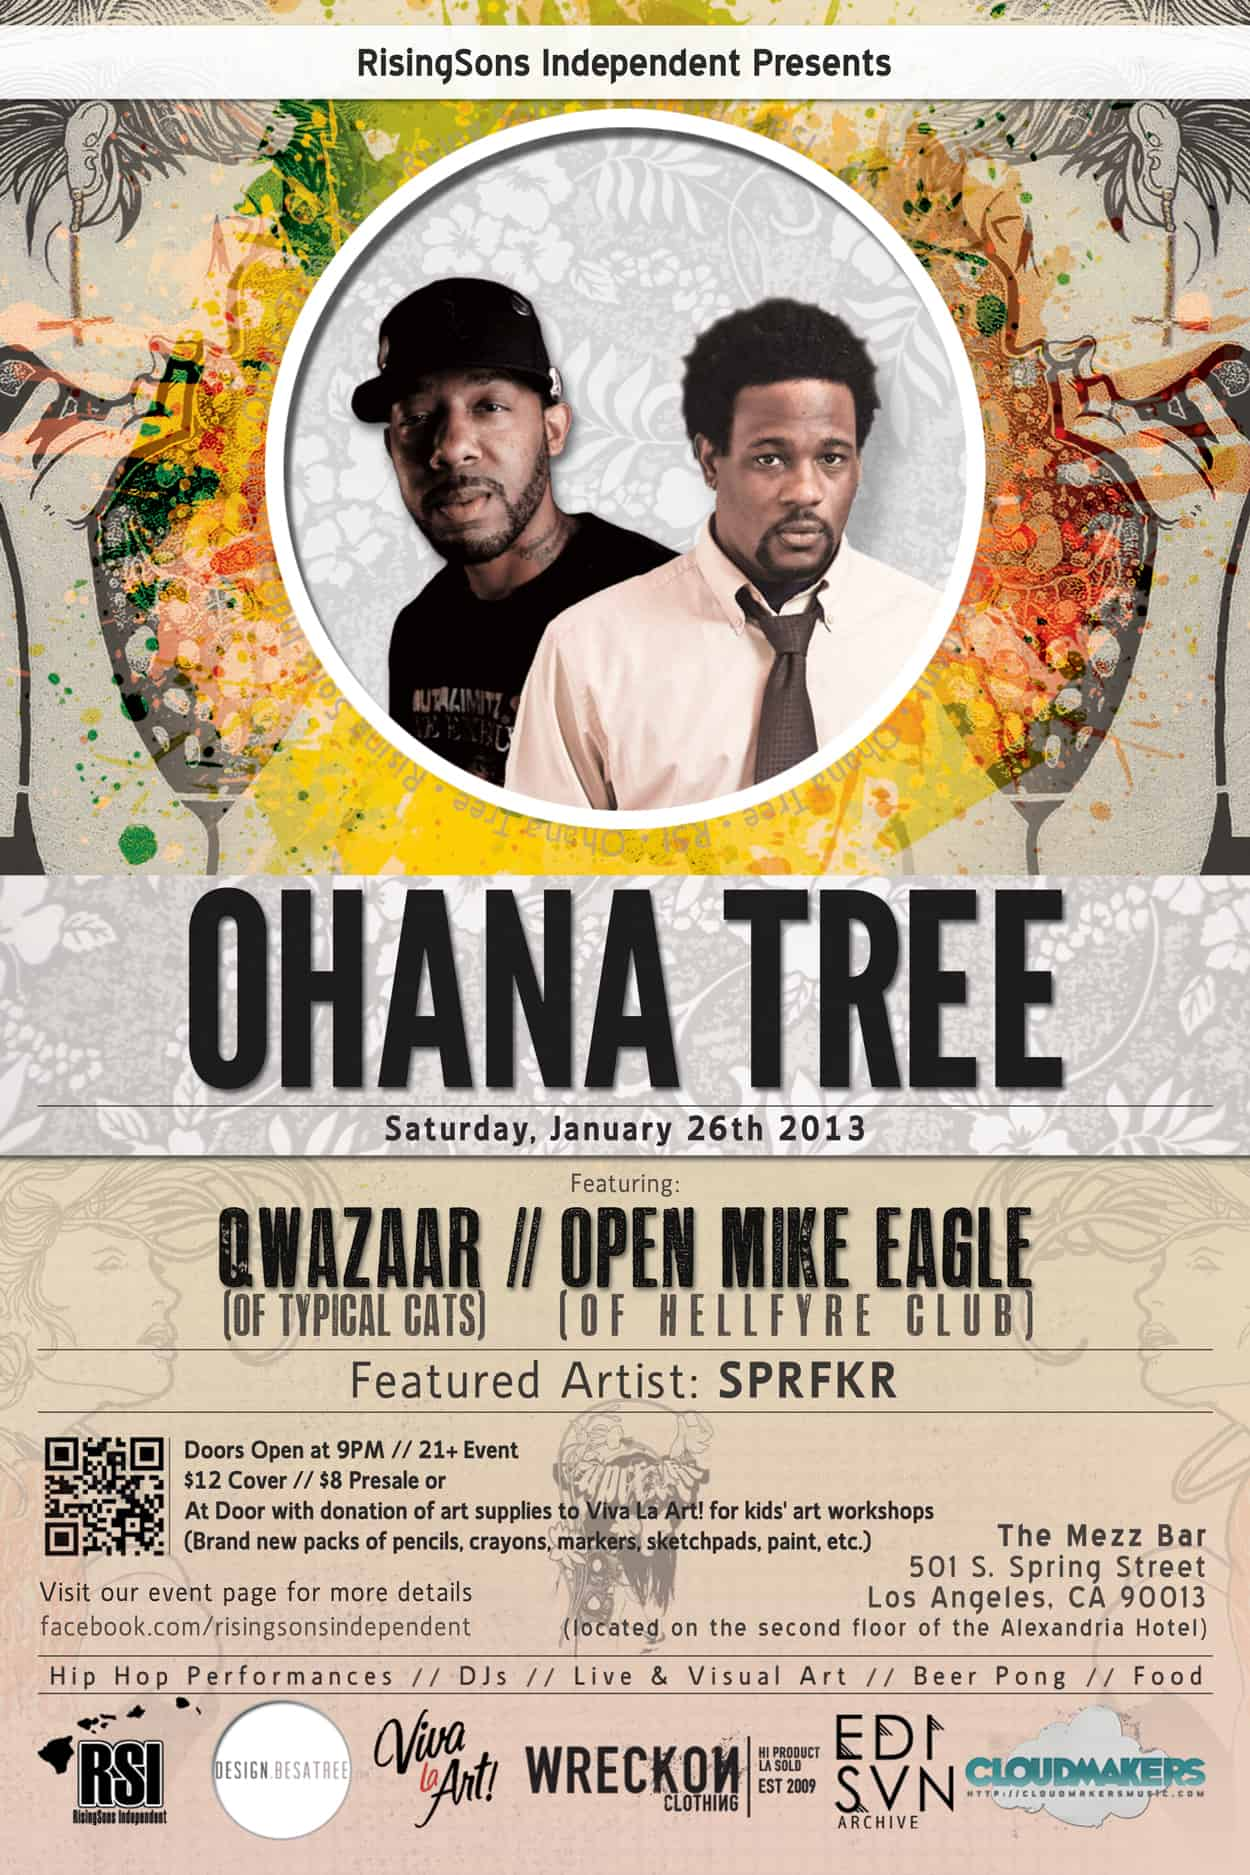 qwazaar and open mike eagle - flyer design